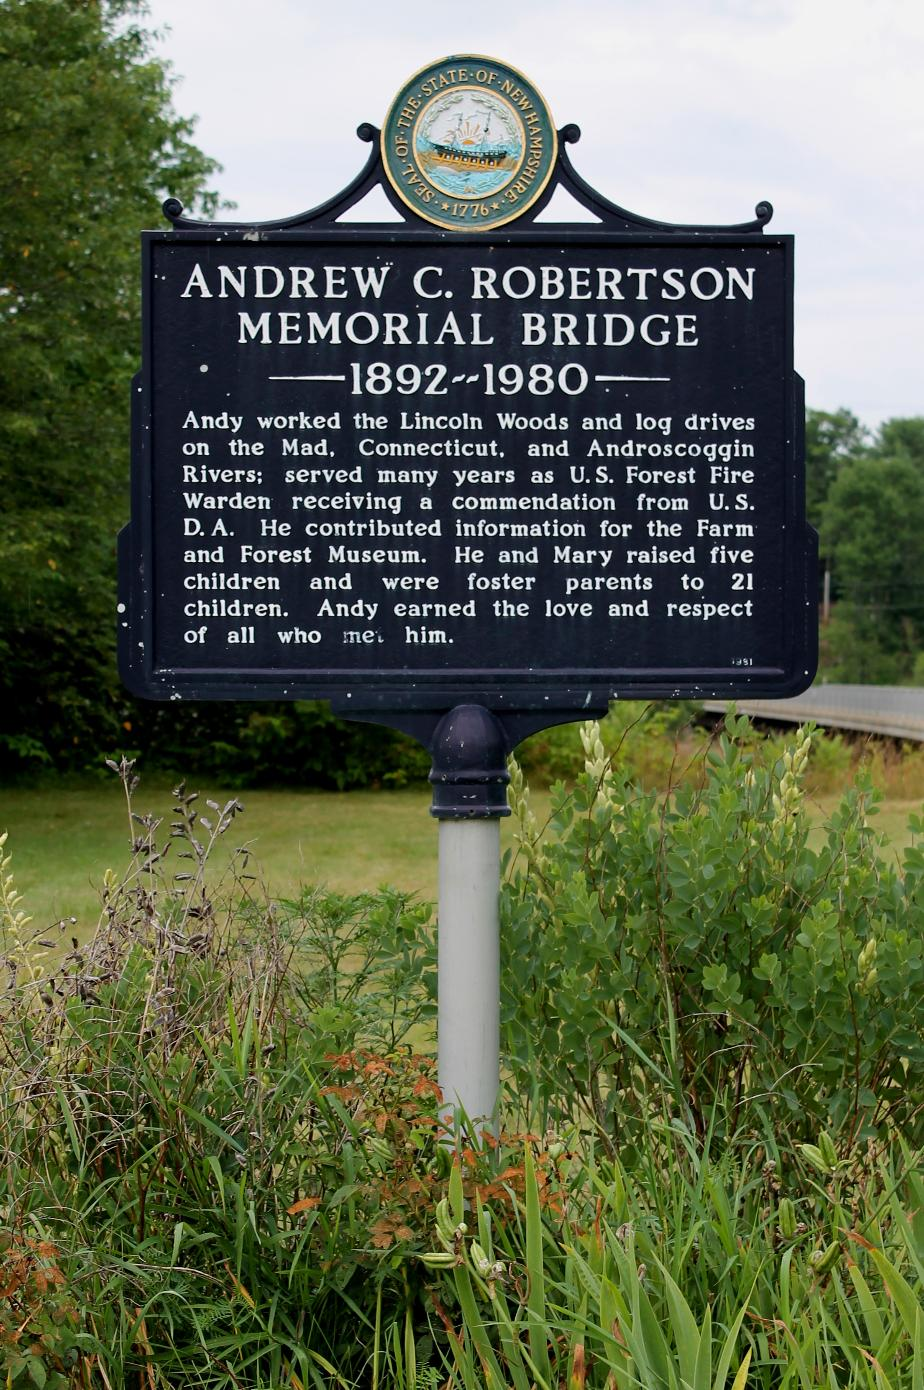 Andrew C. Robertson Memorial Bridge, Thornton NH